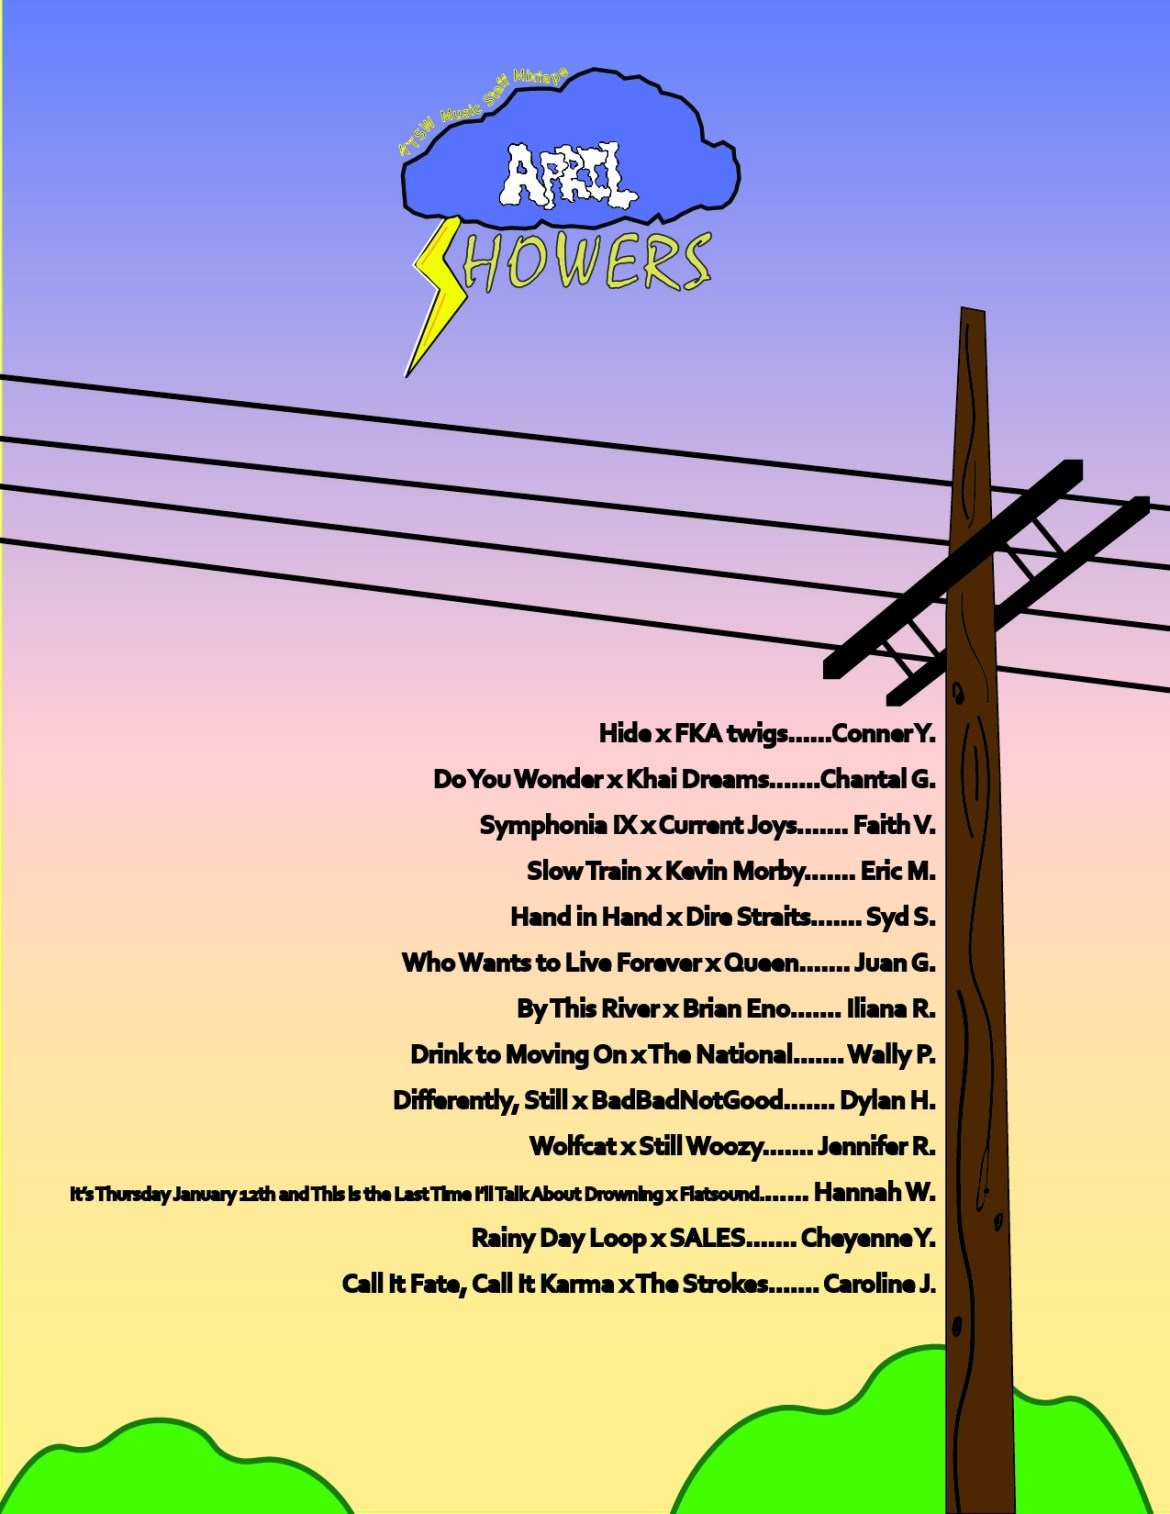 A sunset scene with a storm cloud at the top, an electrical pole with wires on the right and a list of the names and songs.